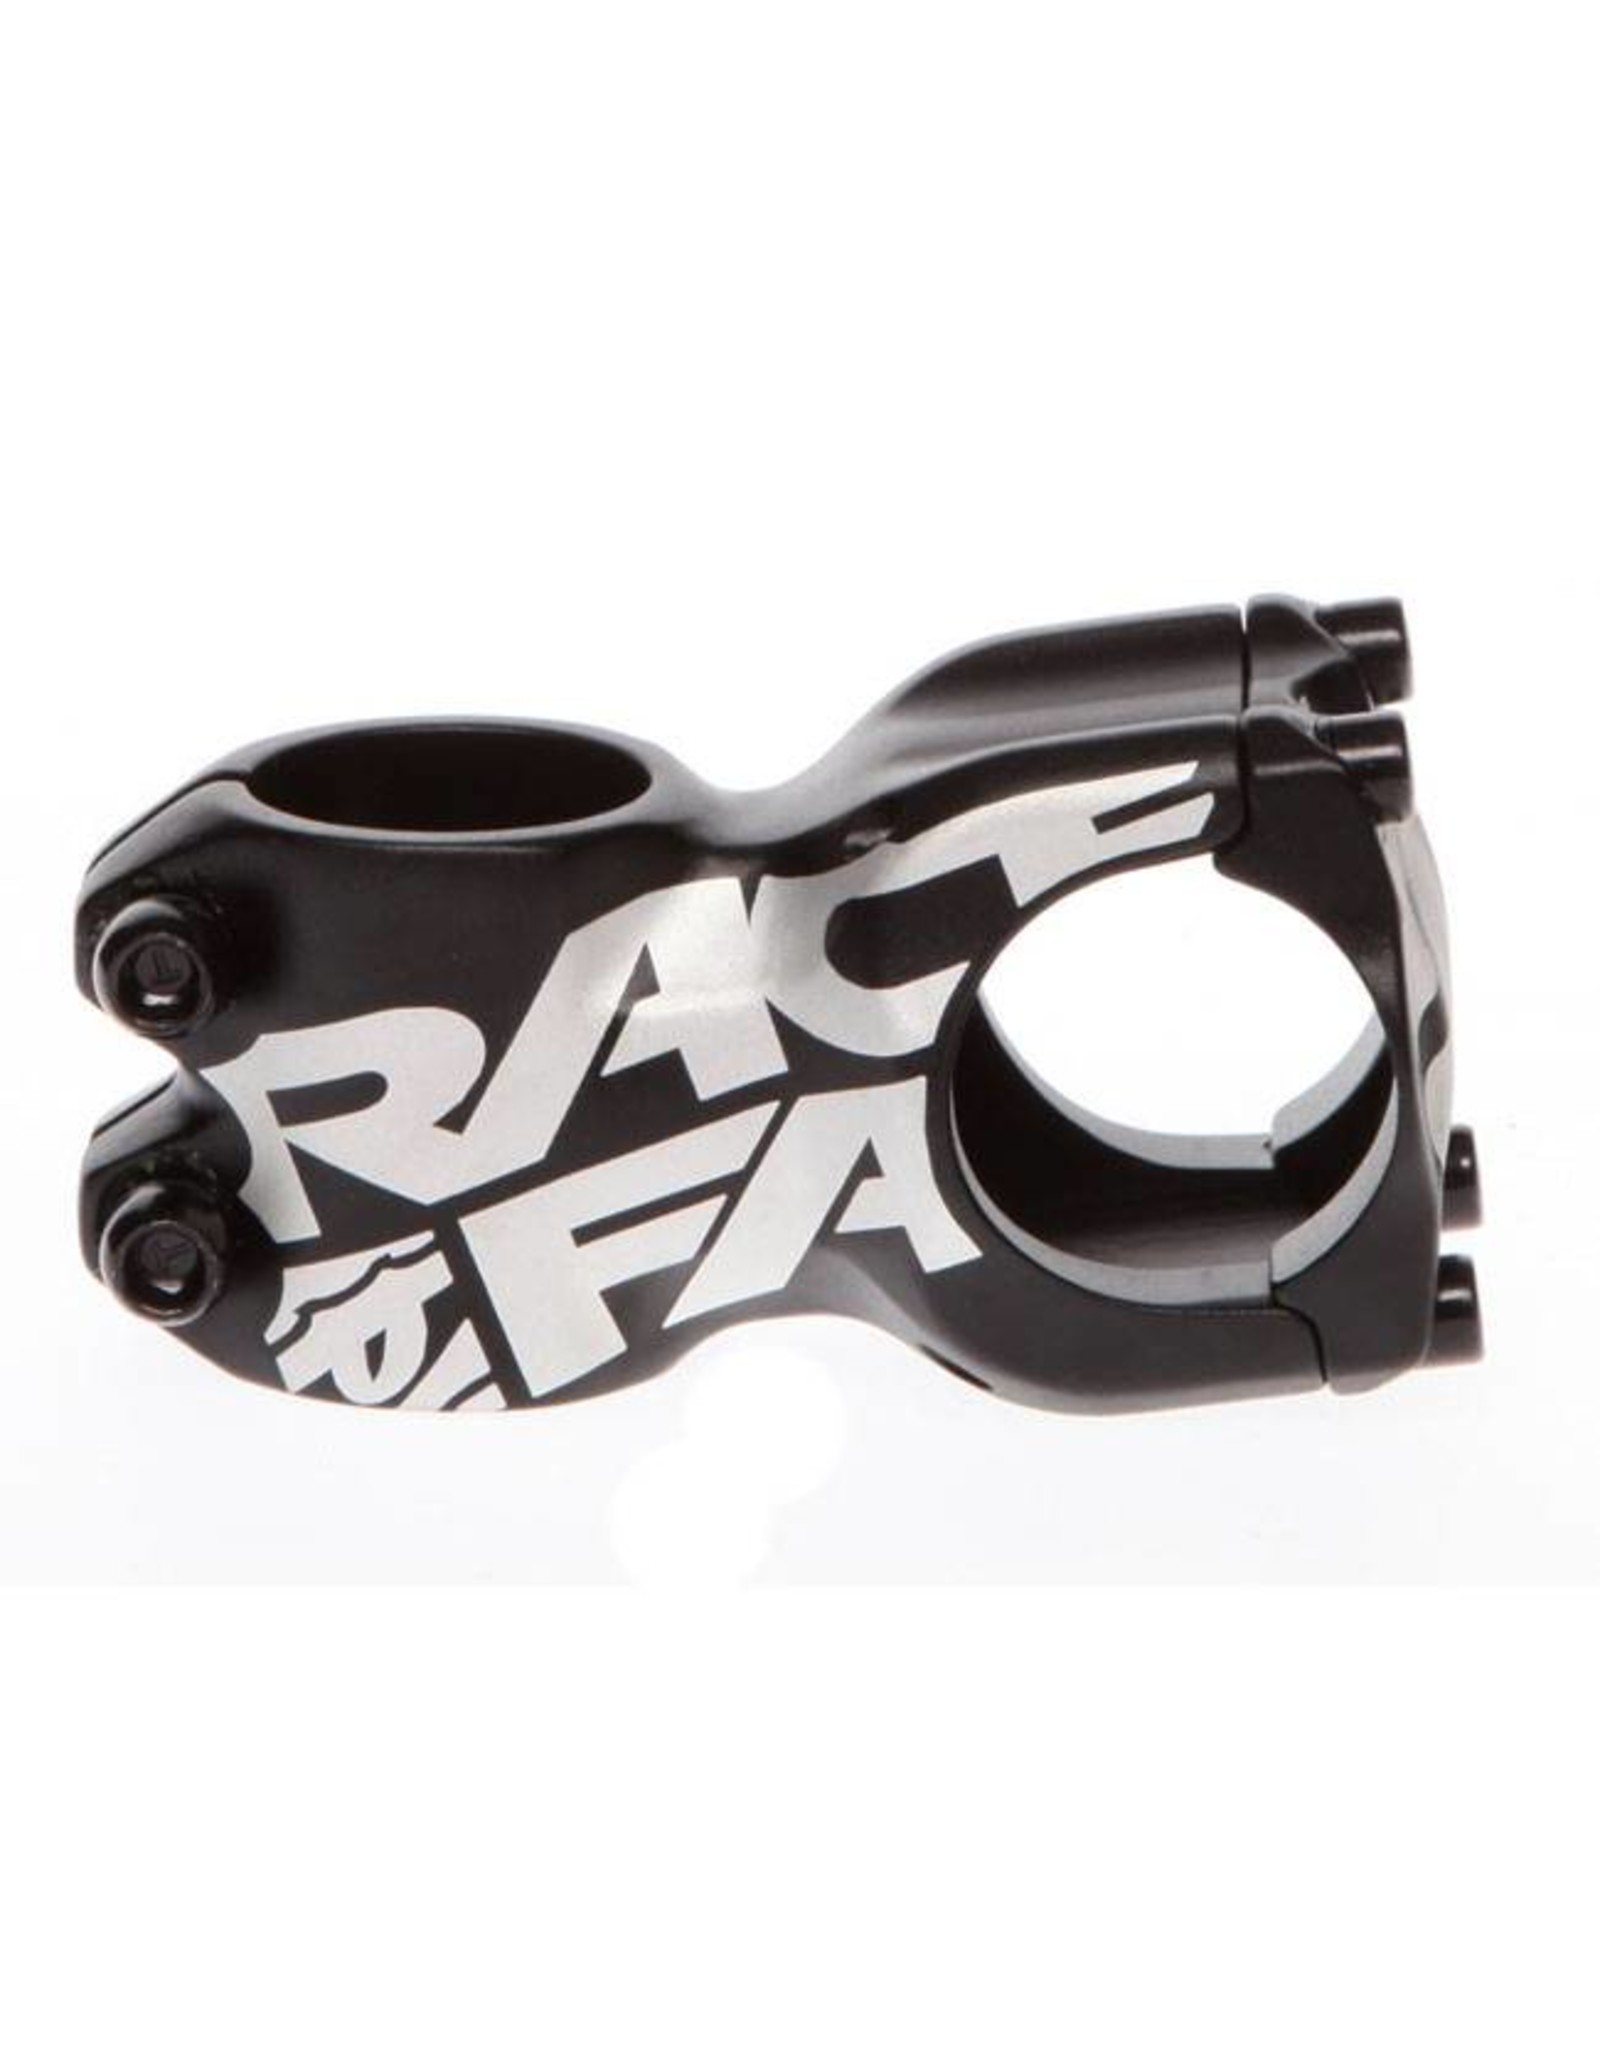 RaceFace RaceFace Chester Stem: 70mm +/- 8 degree Black